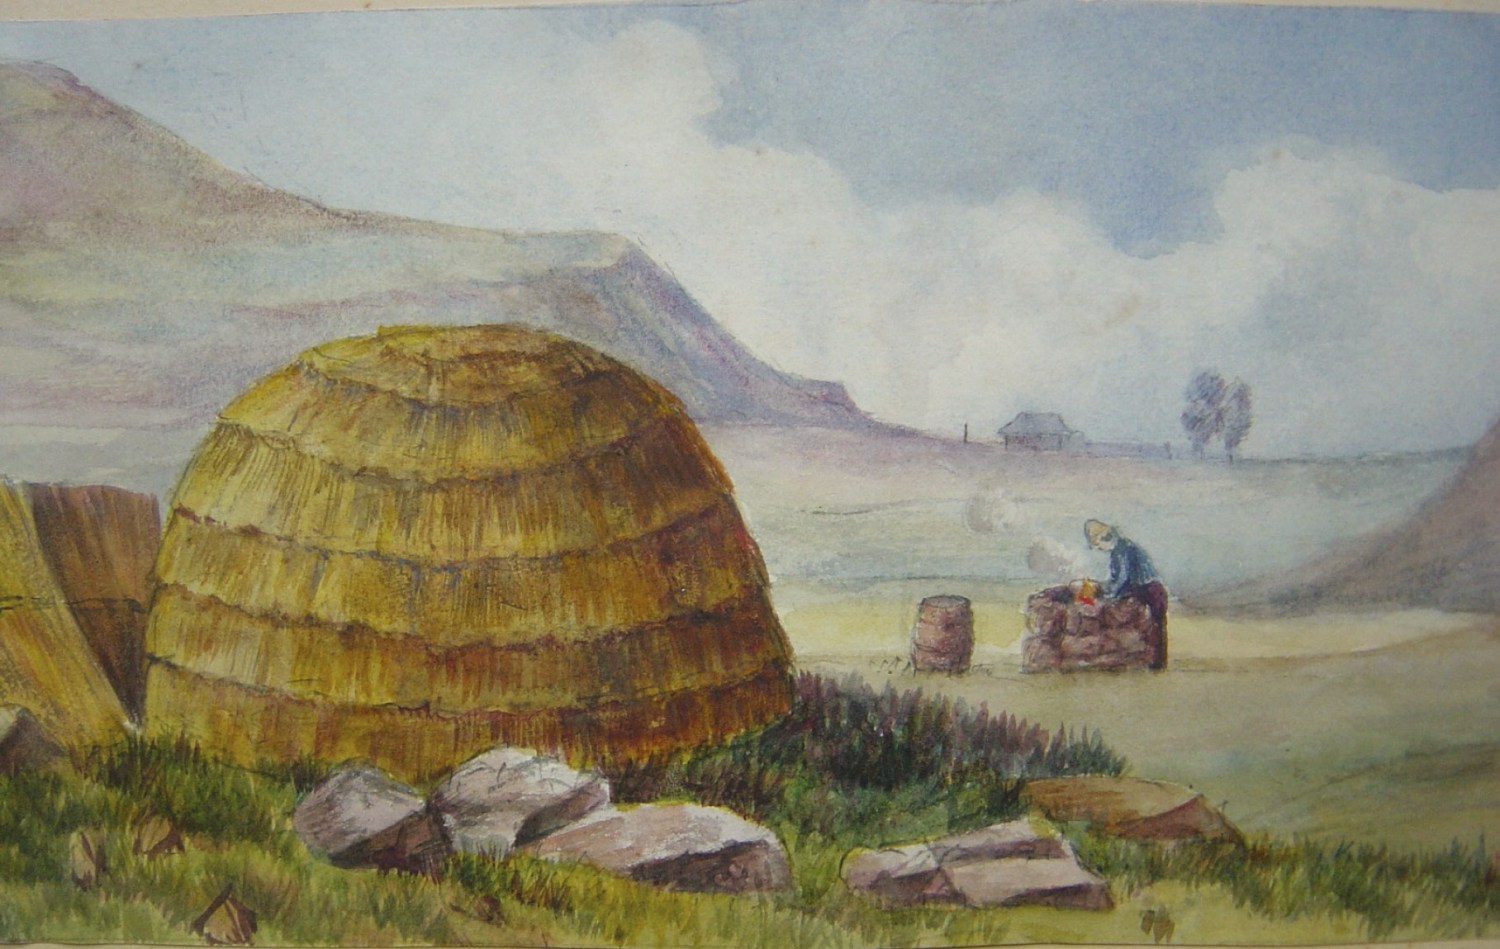 above This painting by Wells herself was titled 'Our Mess Hut at Rorke's Drift'.